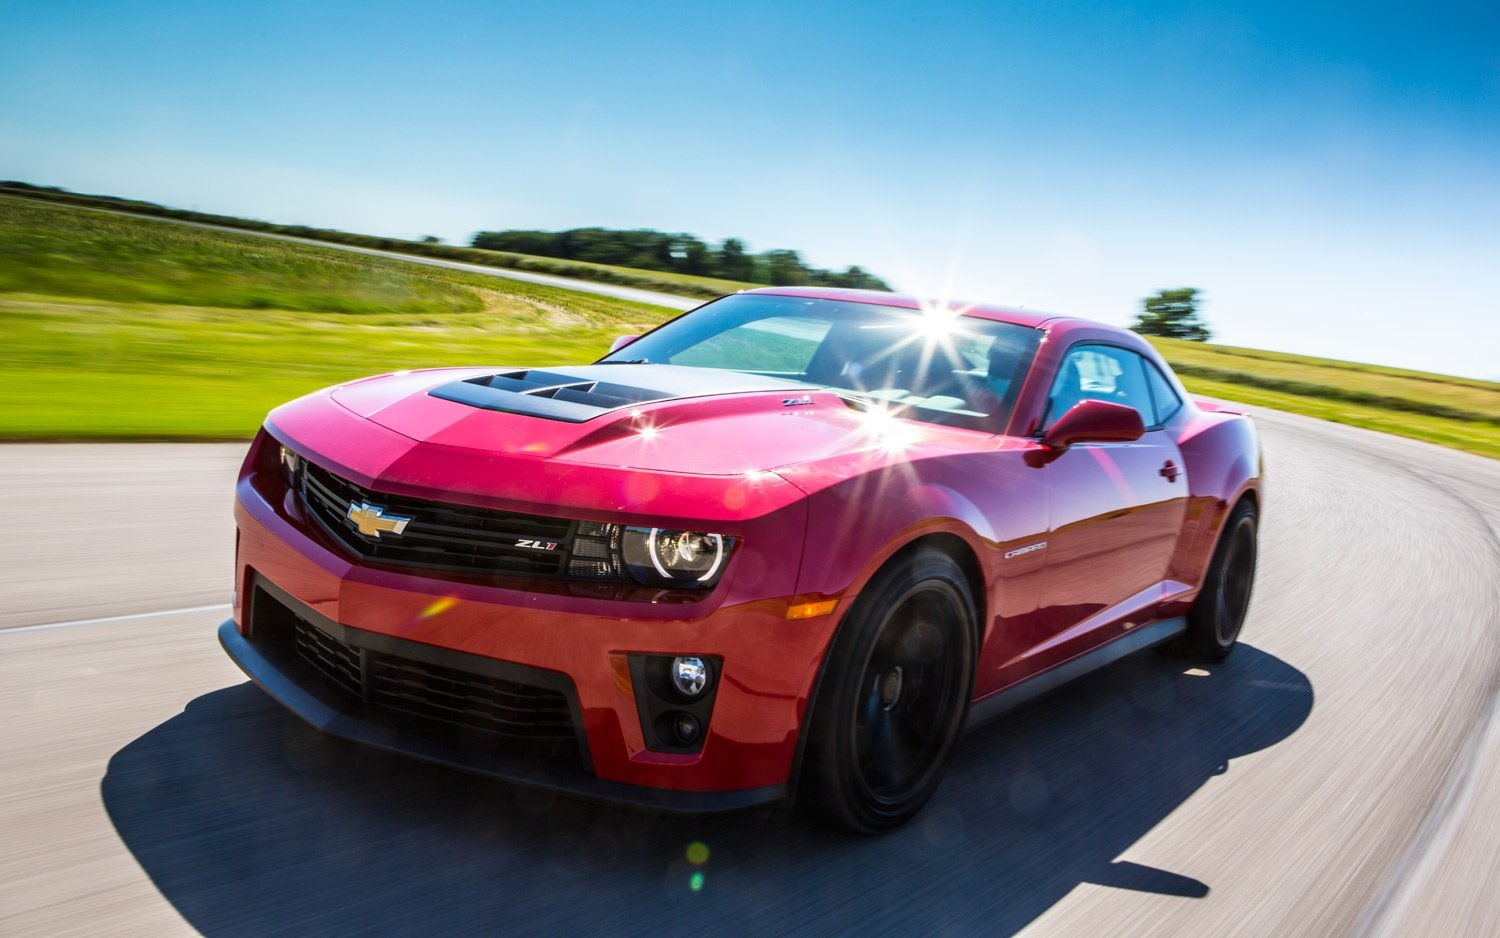 2015 Chevy Camaro ZL1 HD Wallpaper 1500x938